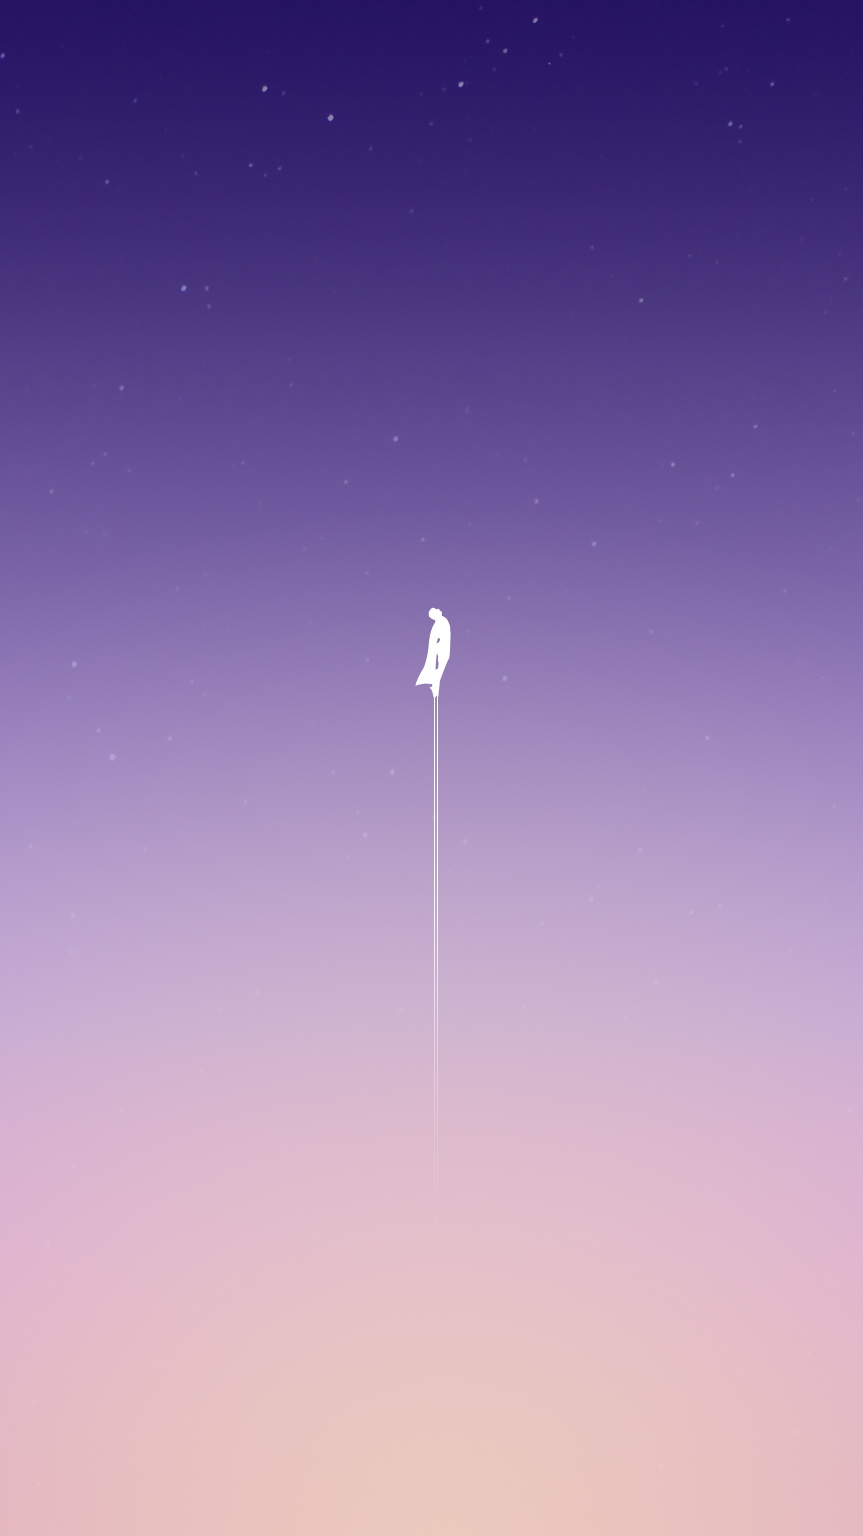 Superman Leaving the Earth iPhone Wallpaper iphoneswallpapers com